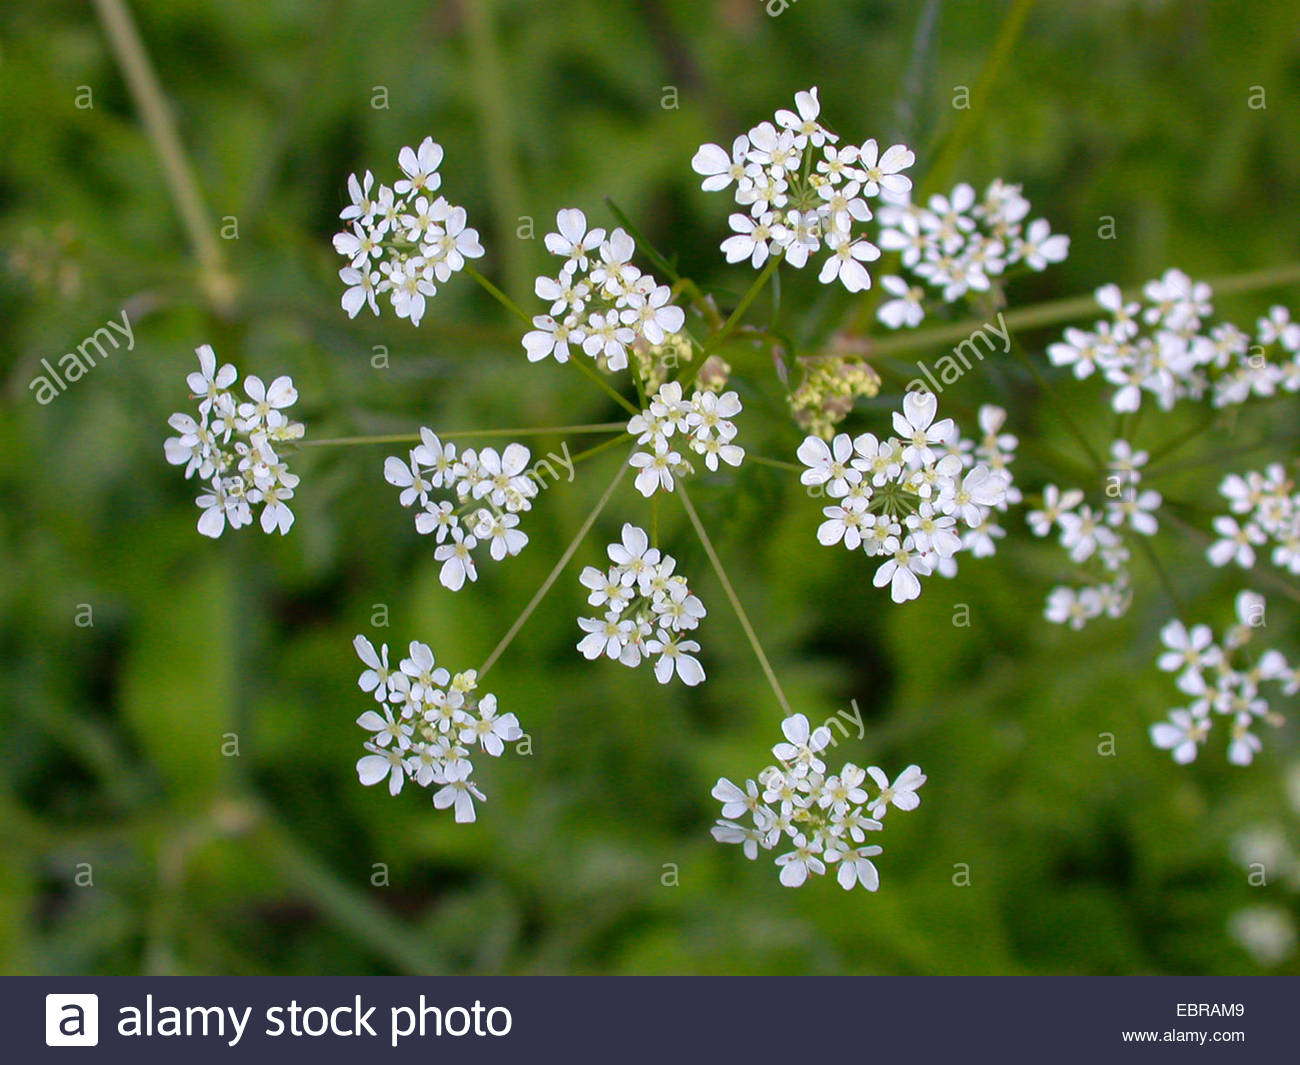 Closeup Of White Wild Chervil Or Cow Parsley Flowers In Woodland.